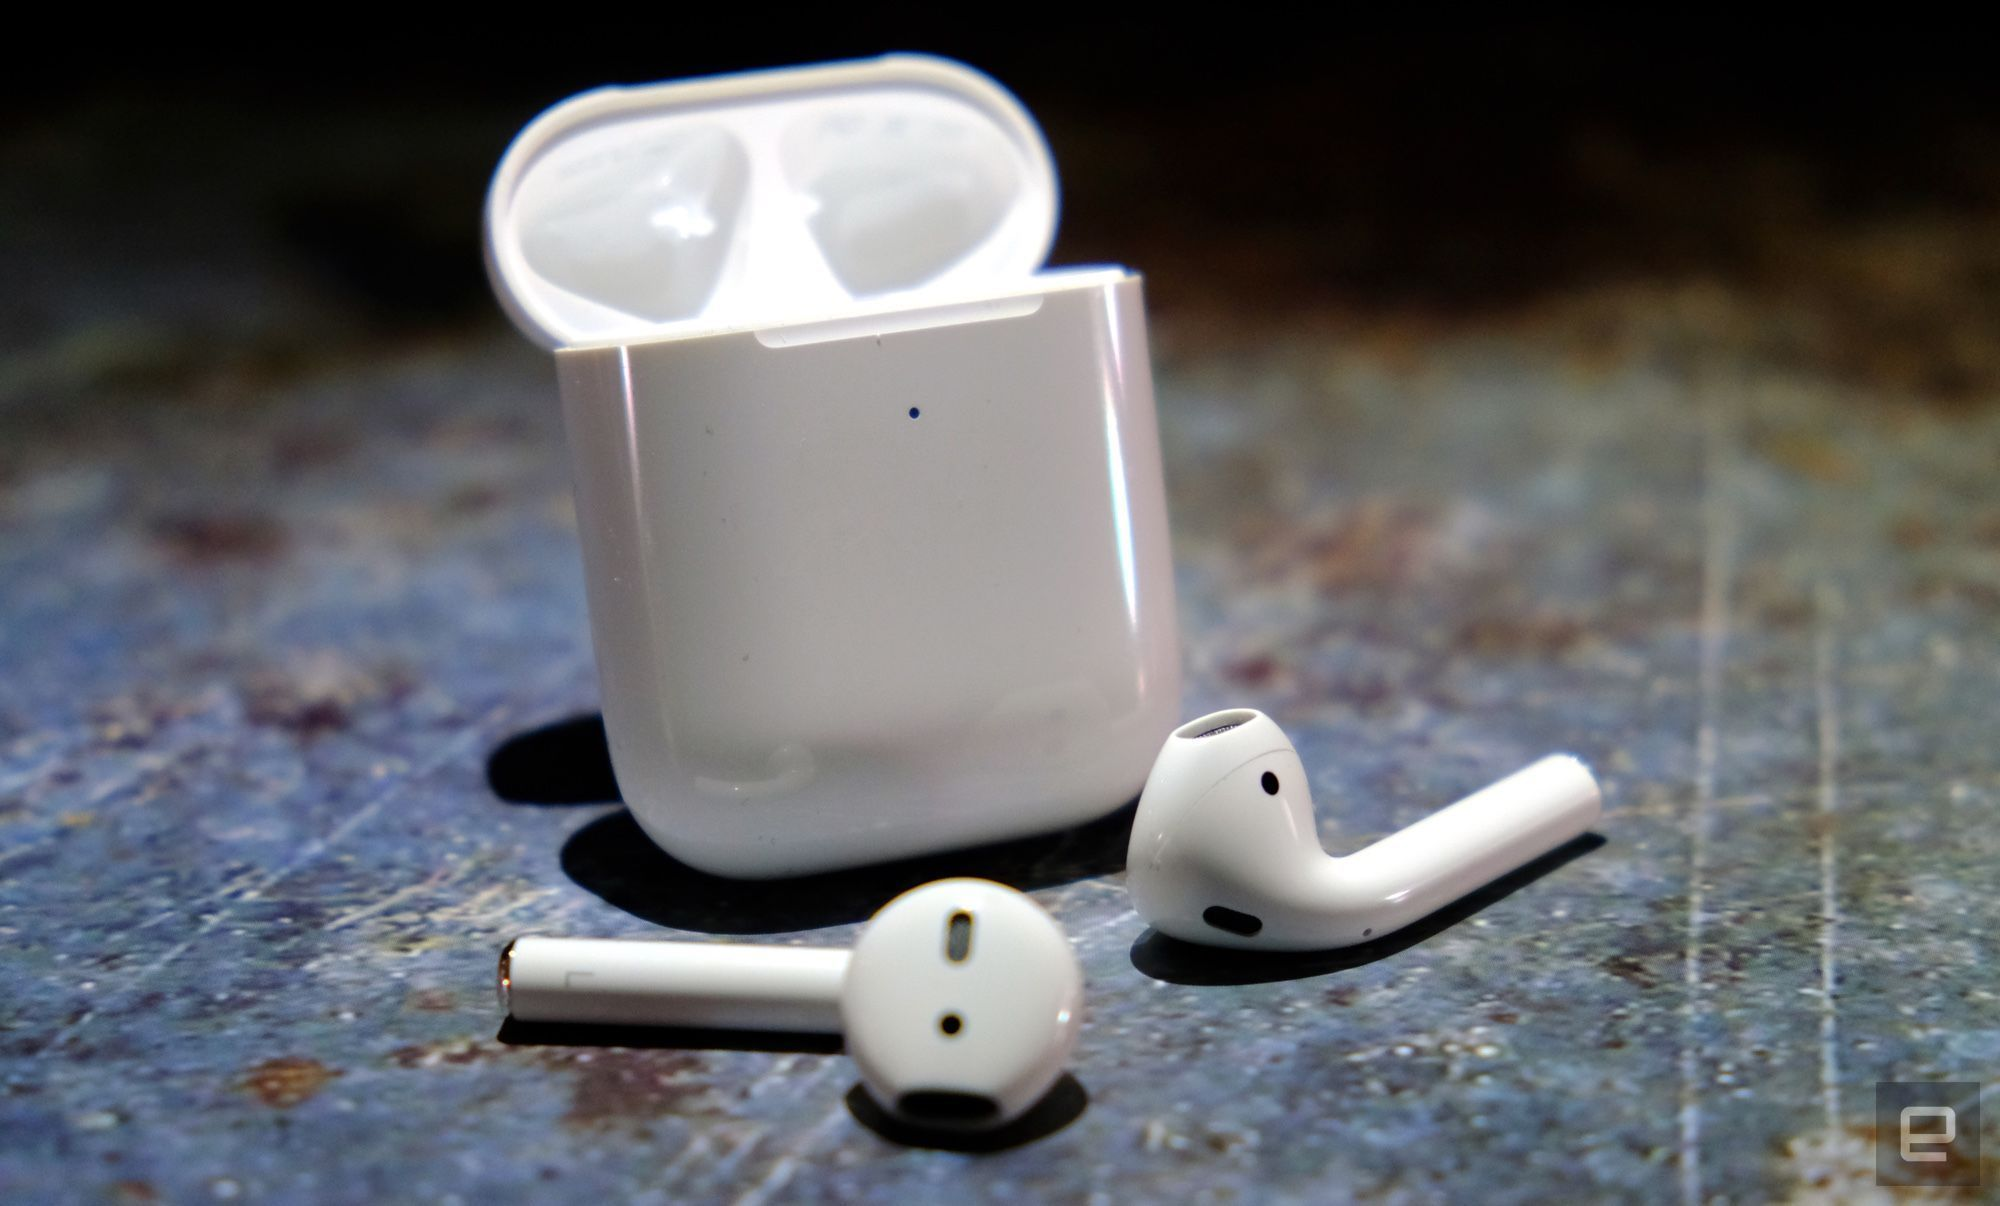 Yahoo 999 Unable To Process Request At This Time Error 999 Apple Airpods 2 Wireless Headphones Earbuds